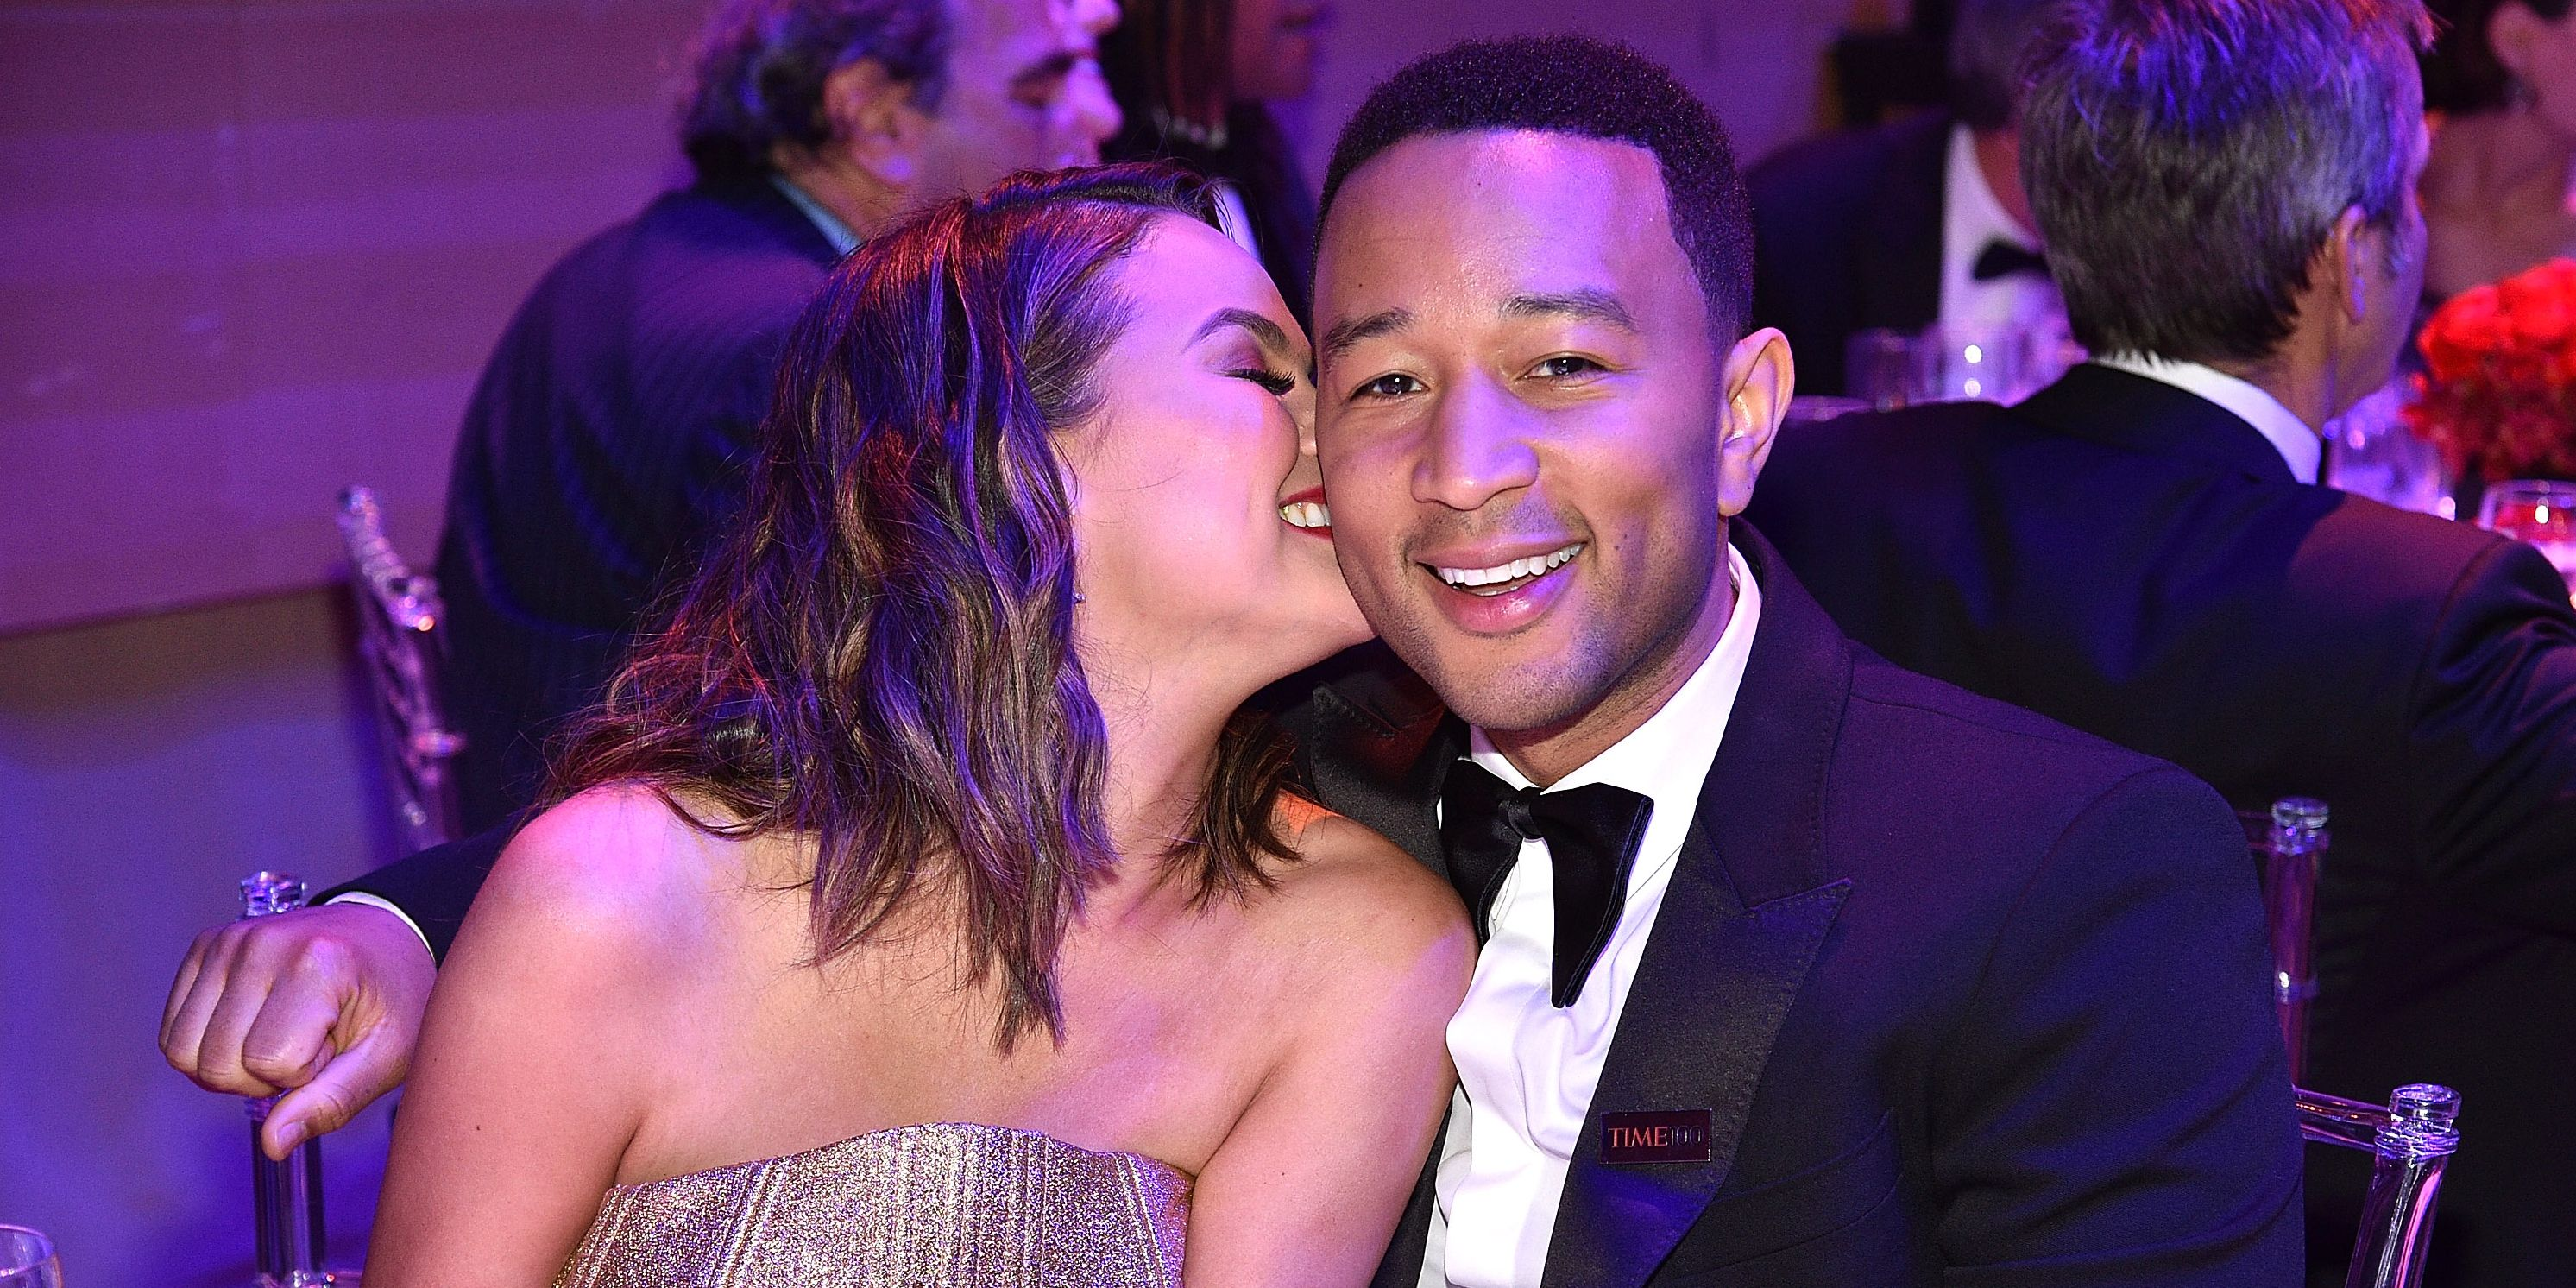 Chrissy Teigen and John Legend attend 2017 Time 100 Gala at Jazz at Lincoln Center on April 25, 2017 in New York City.